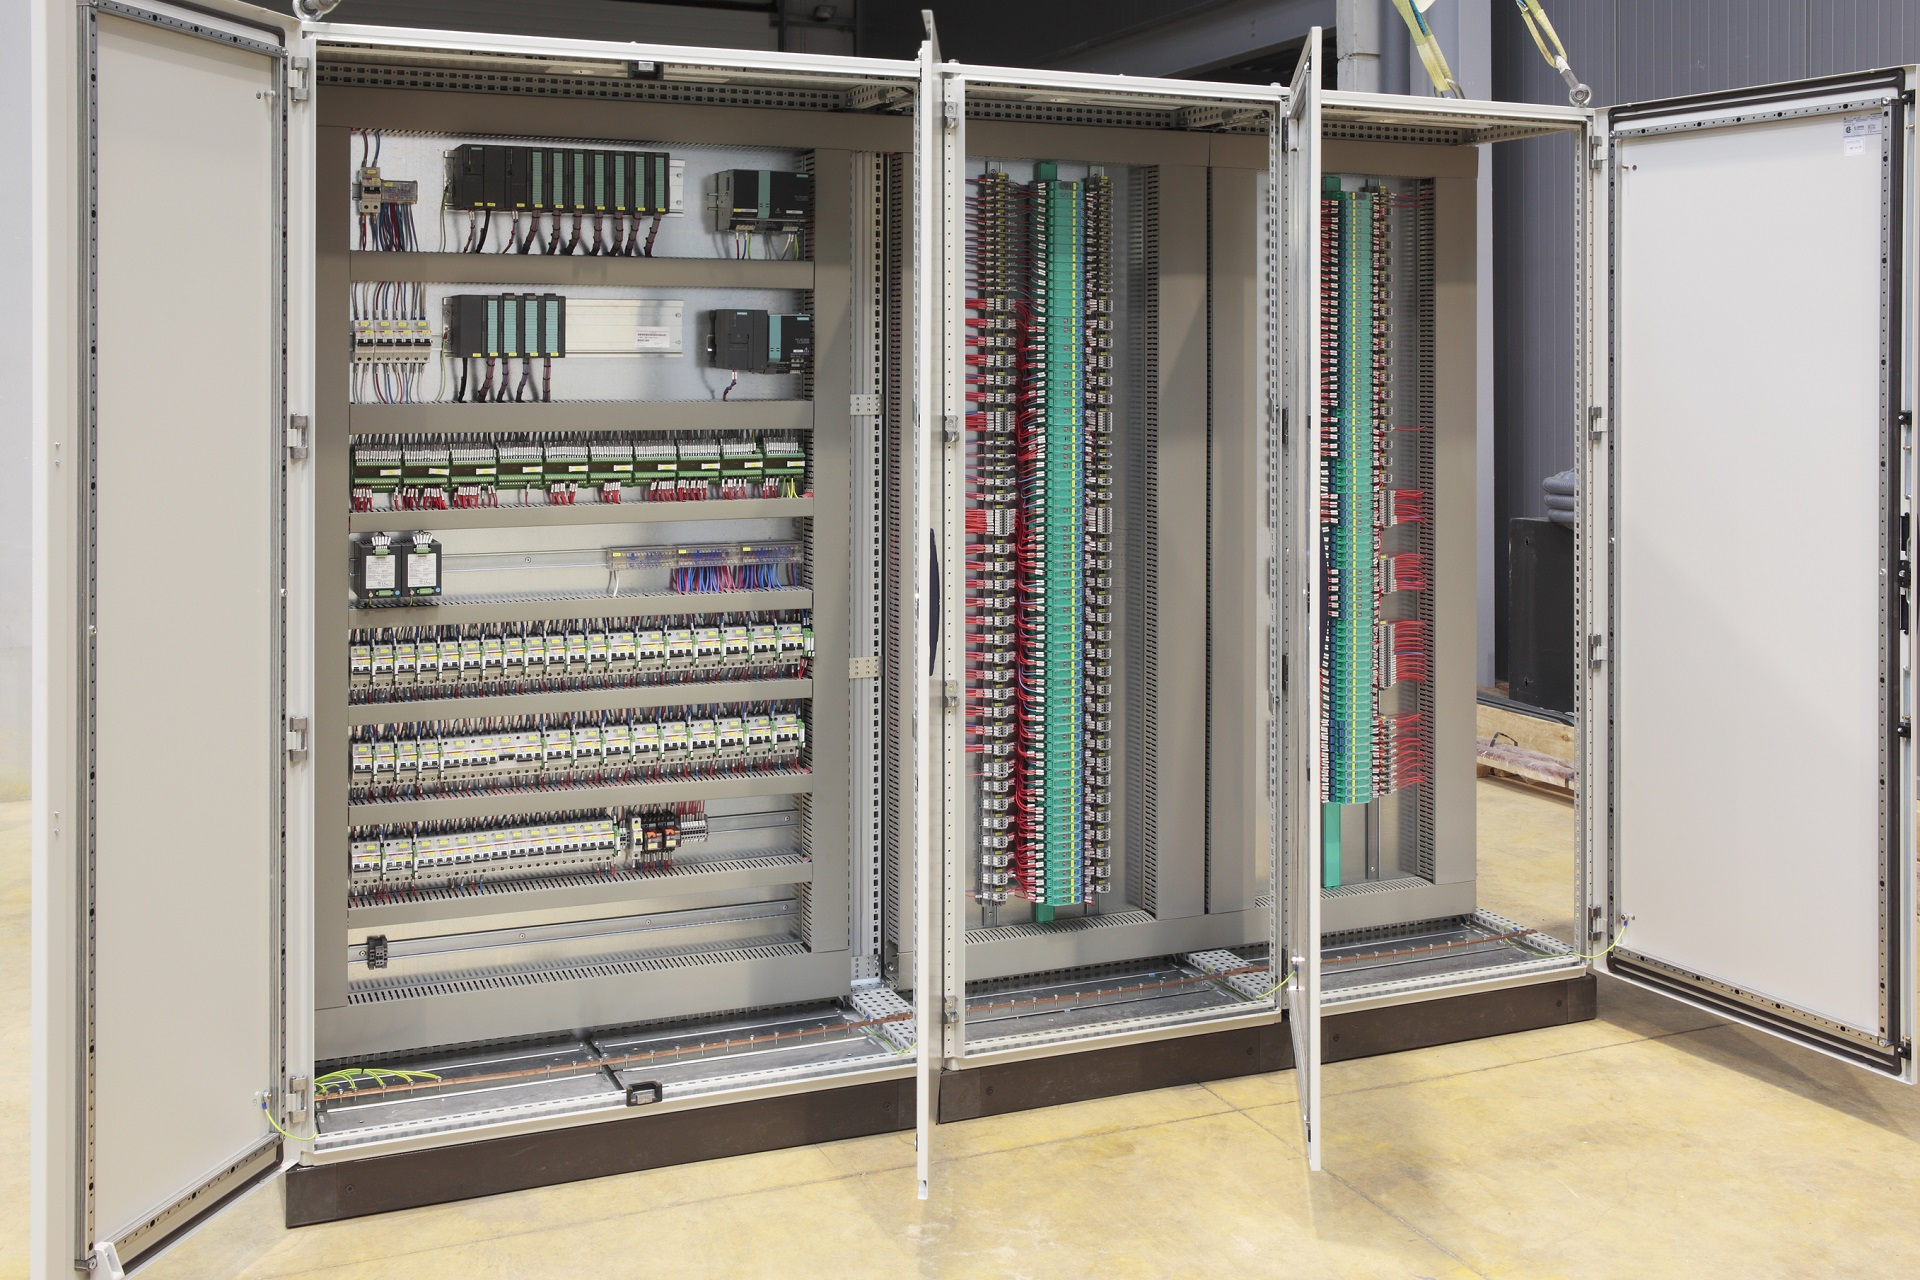 Automation panel board